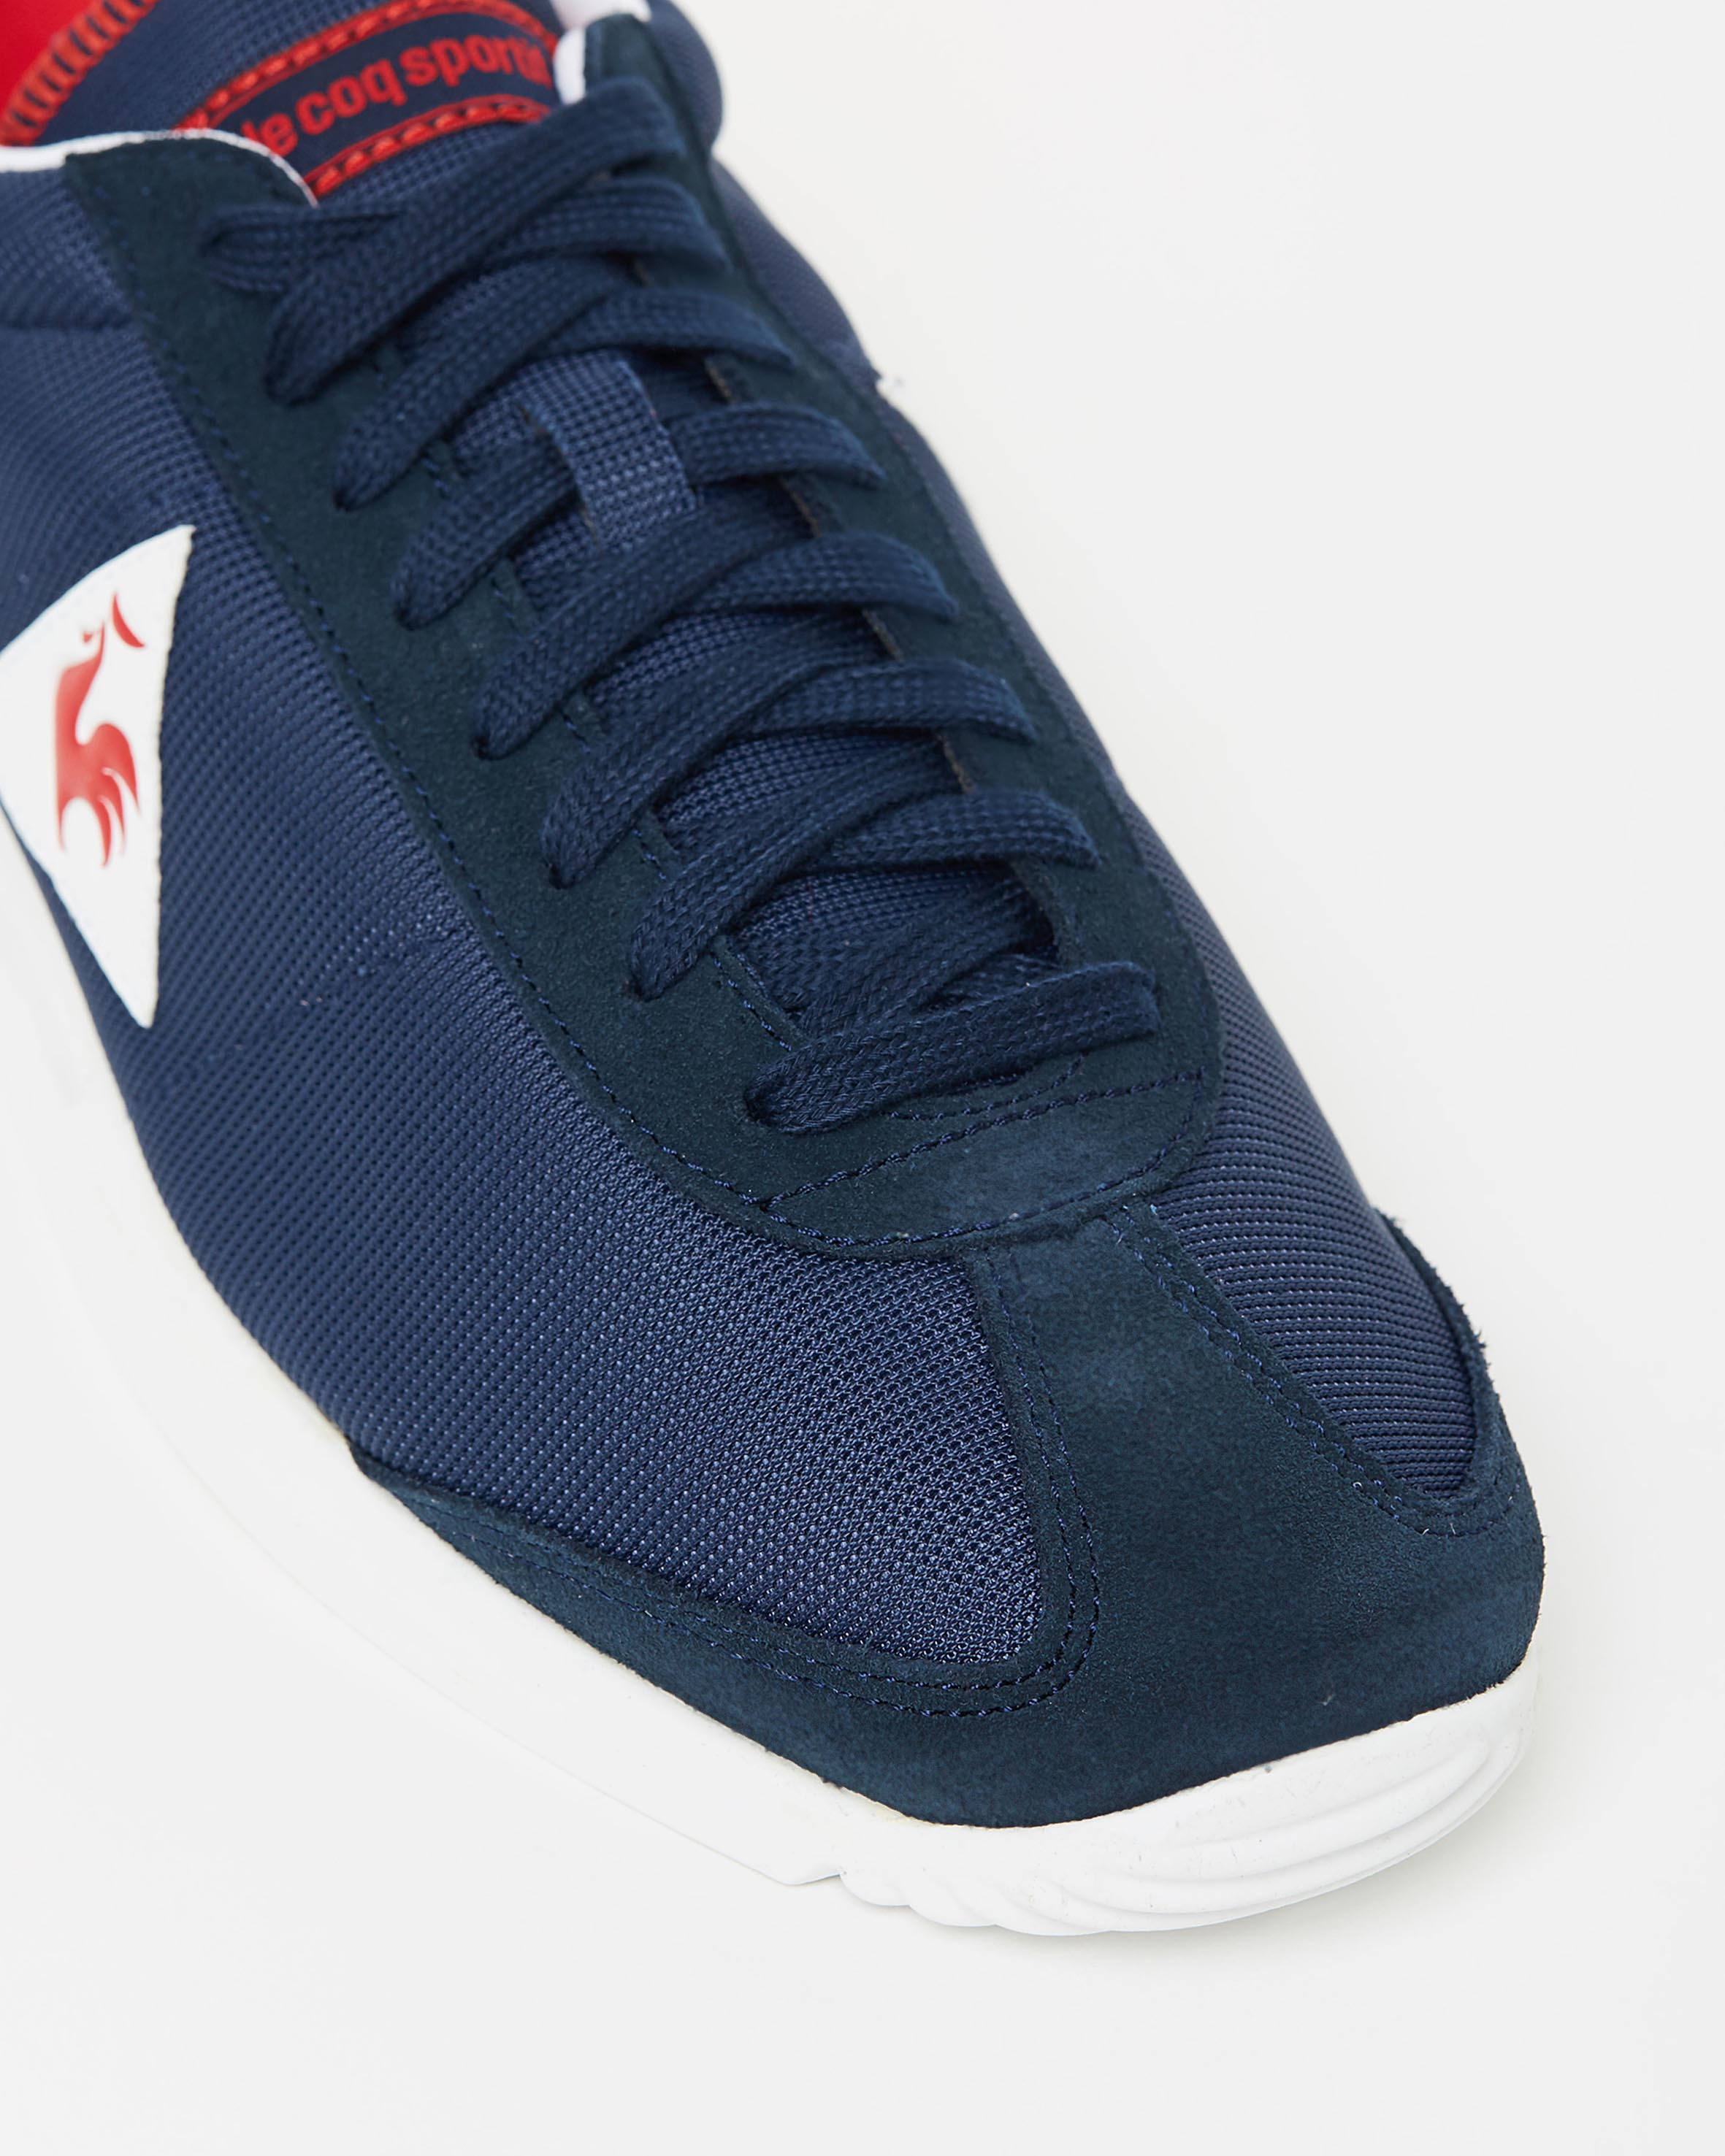 le coq sportif quartz nylon sneakers in dress blue sneaker store. Black Bedroom Furniture Sets. Home Design Ideas